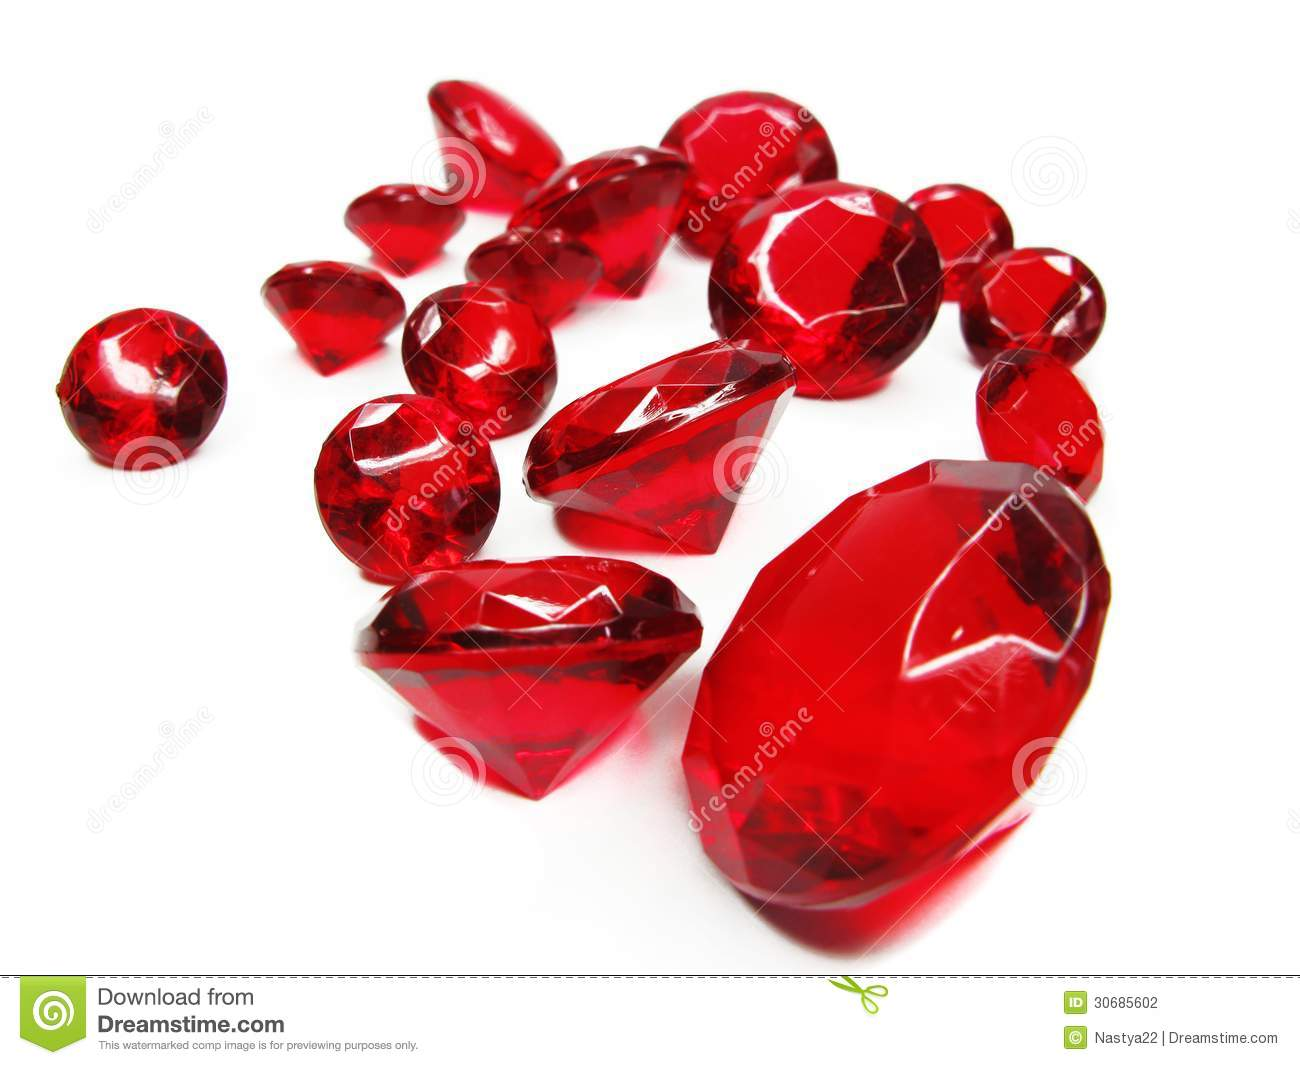 Red Ruby Gem Stones Crystals Stock Photo Image Of Bright